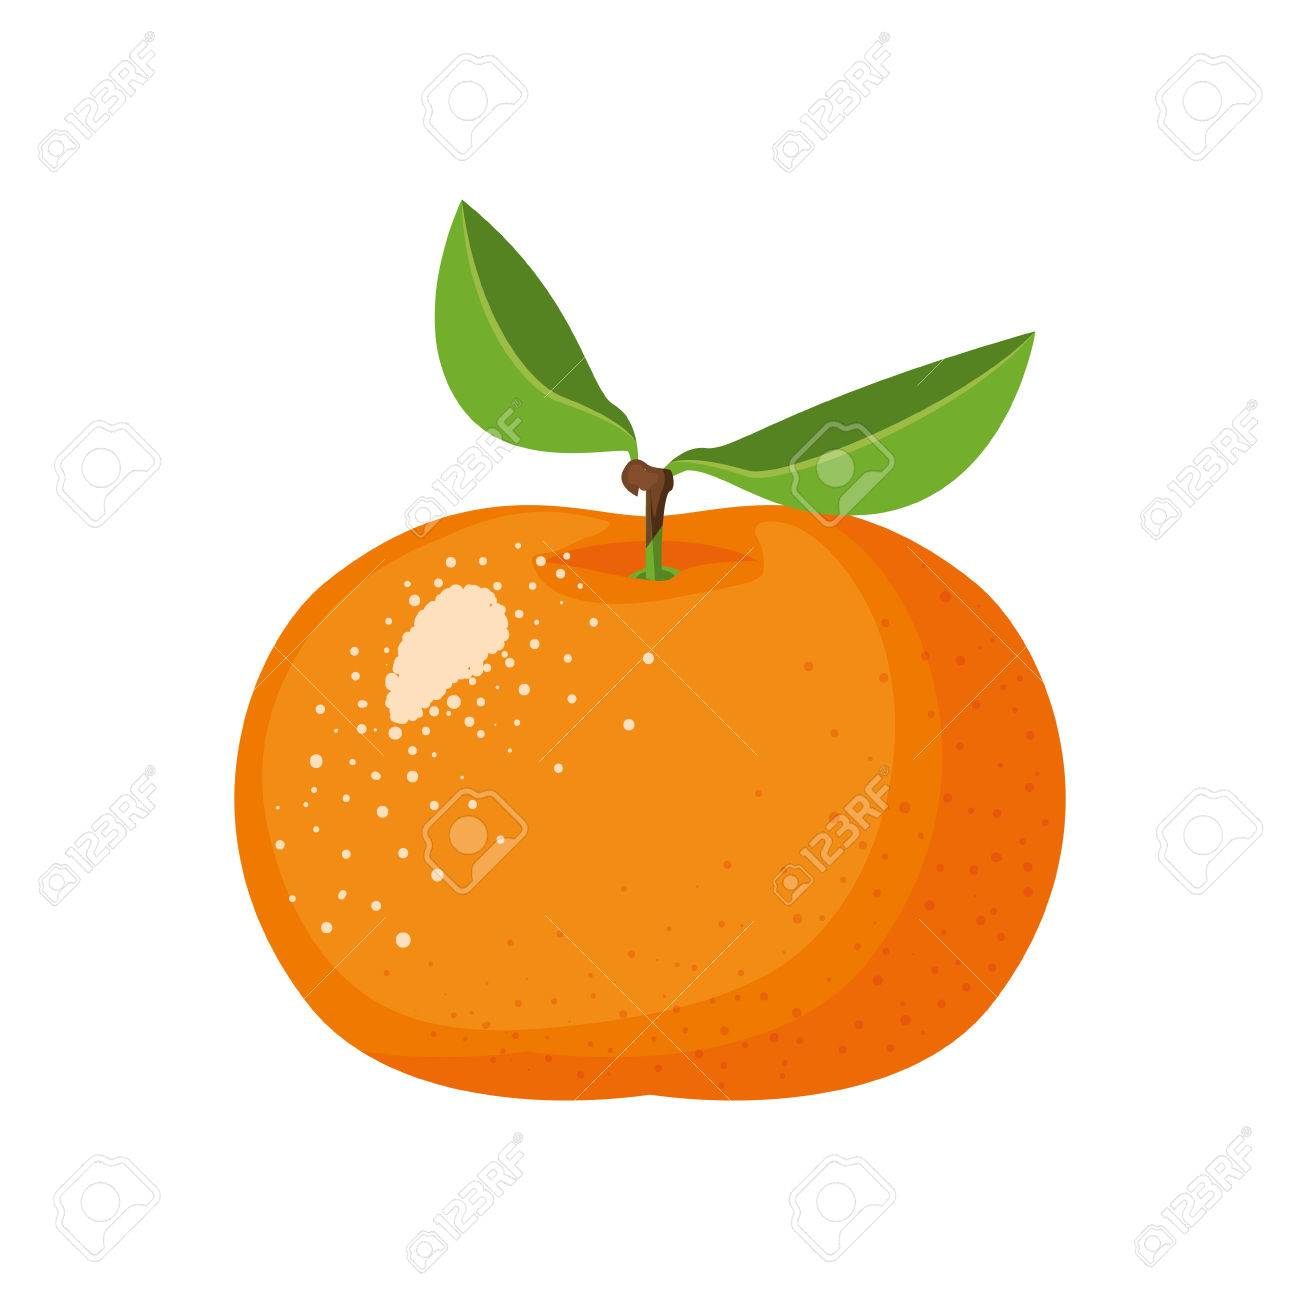 white background with realistic tangerine fruit vector illustration - 82402389